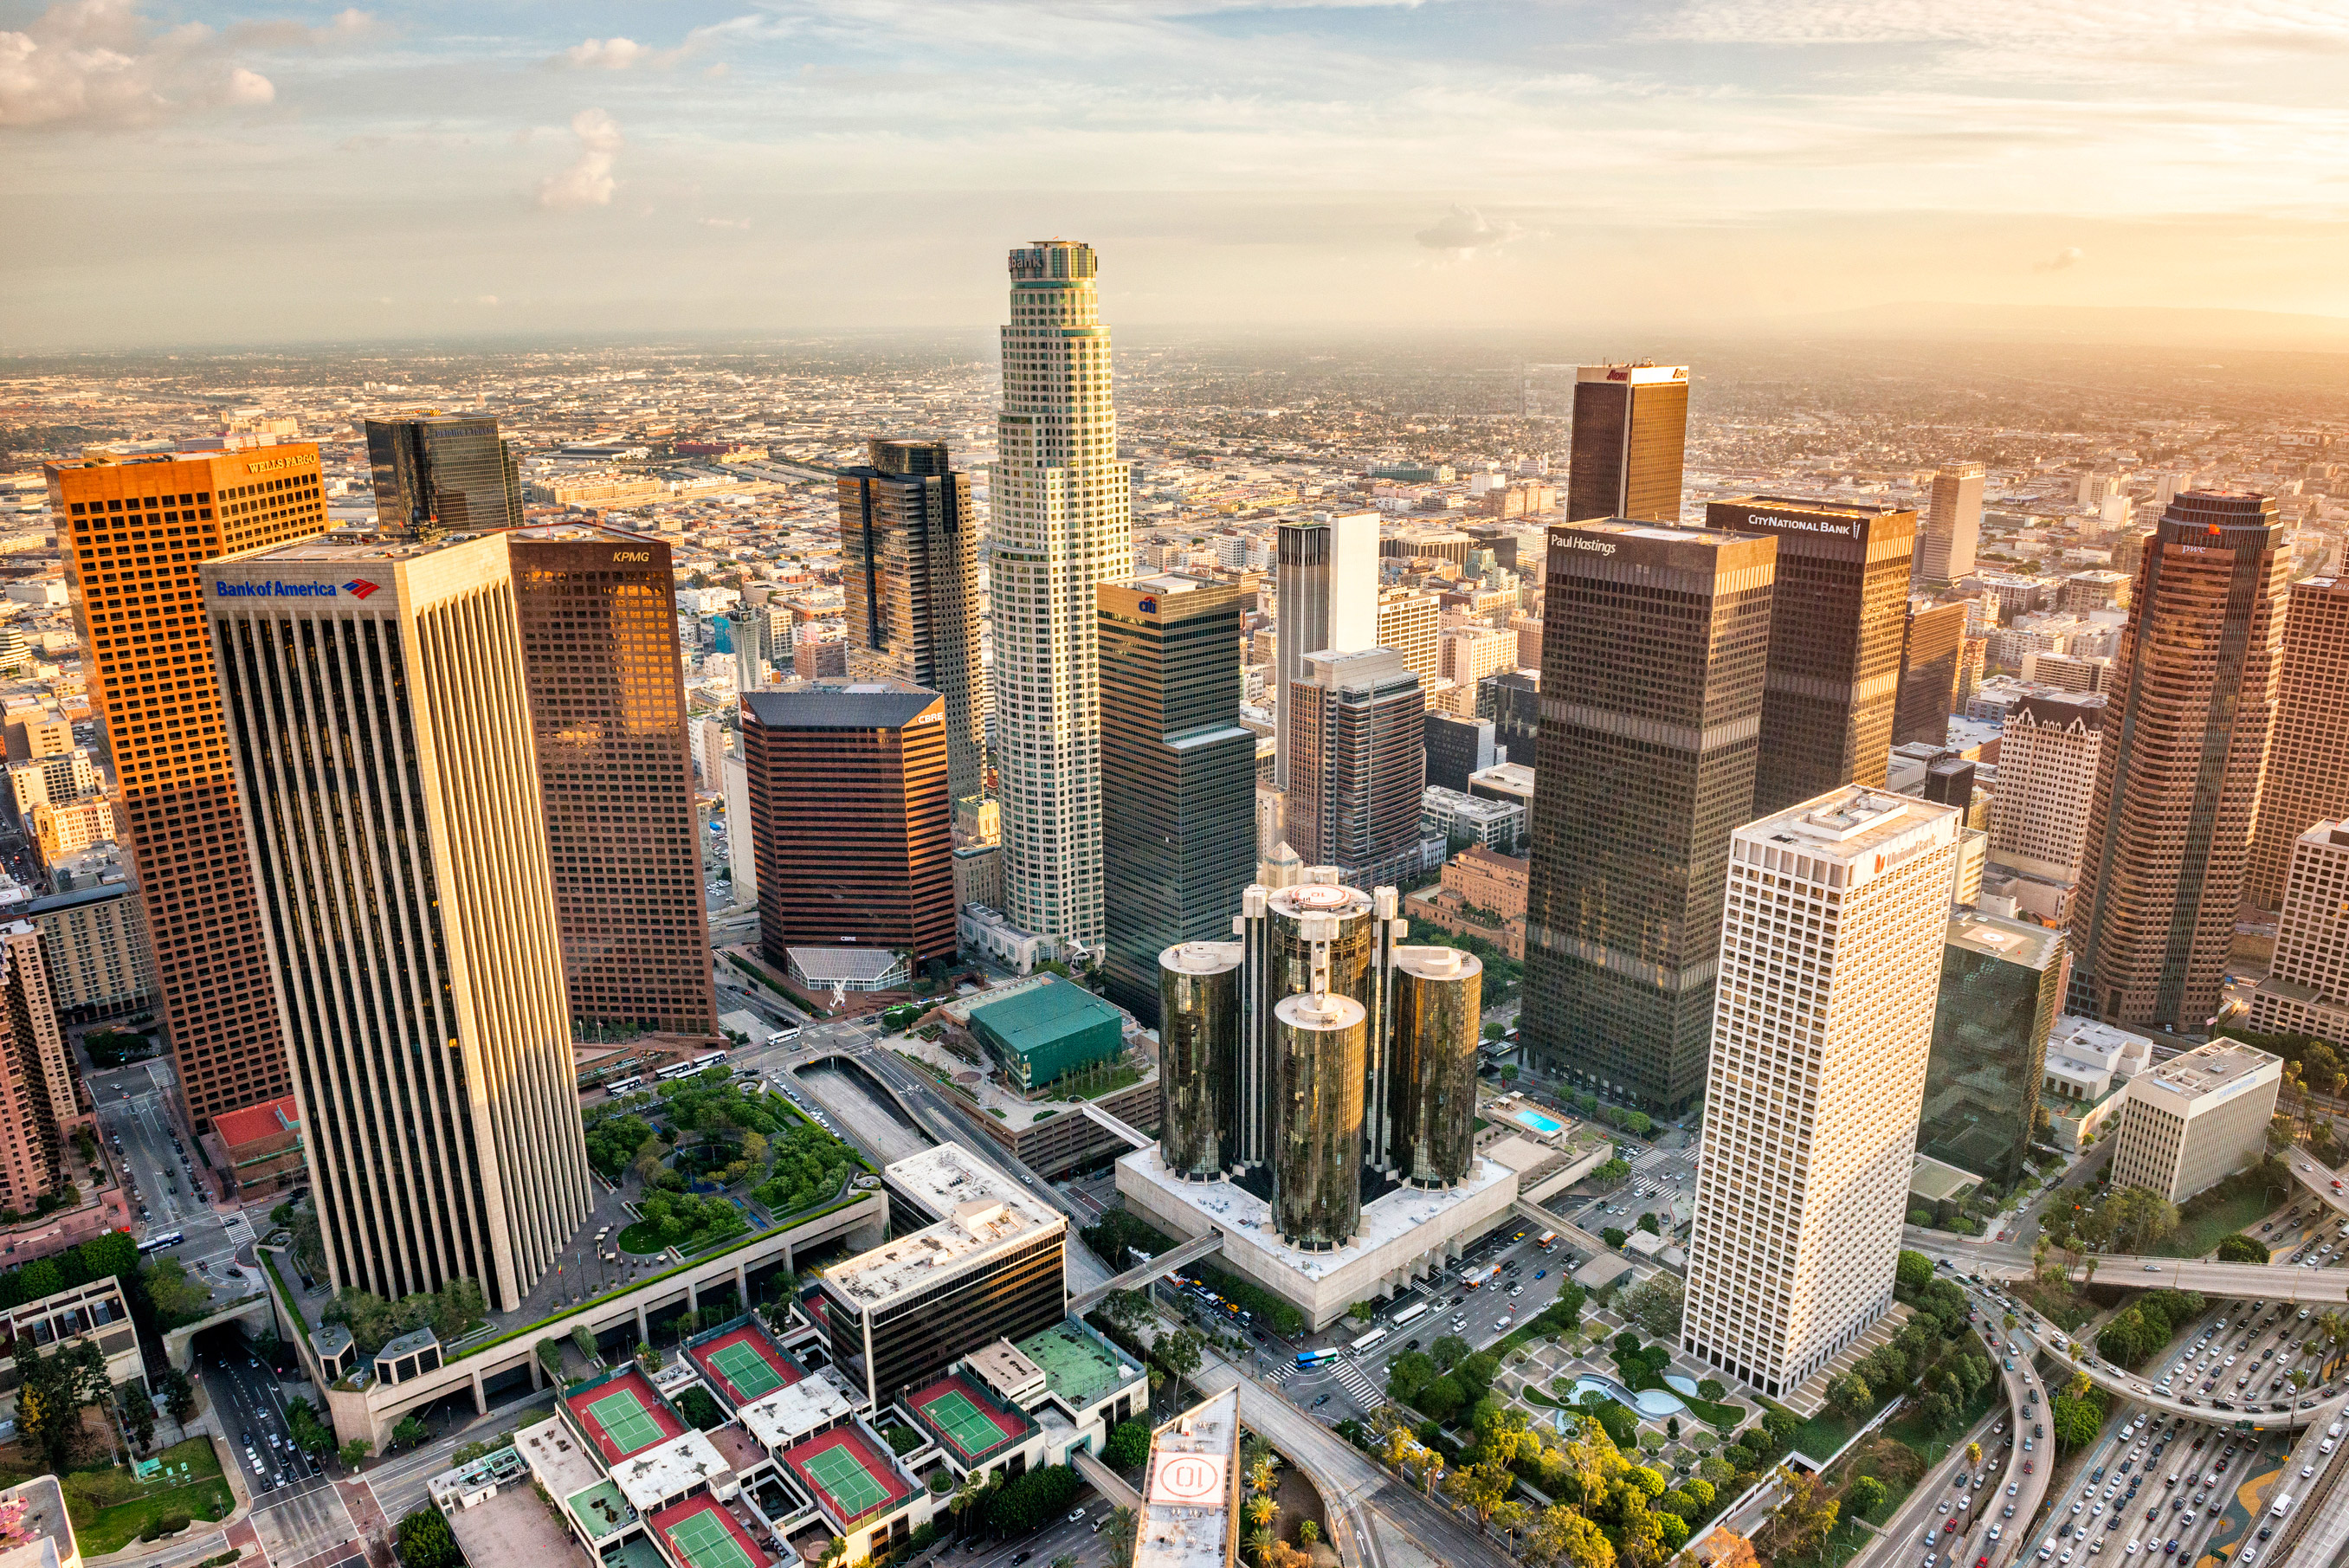 Aerial-View-of-Downtown-Los-Angeles-Skyscrapers